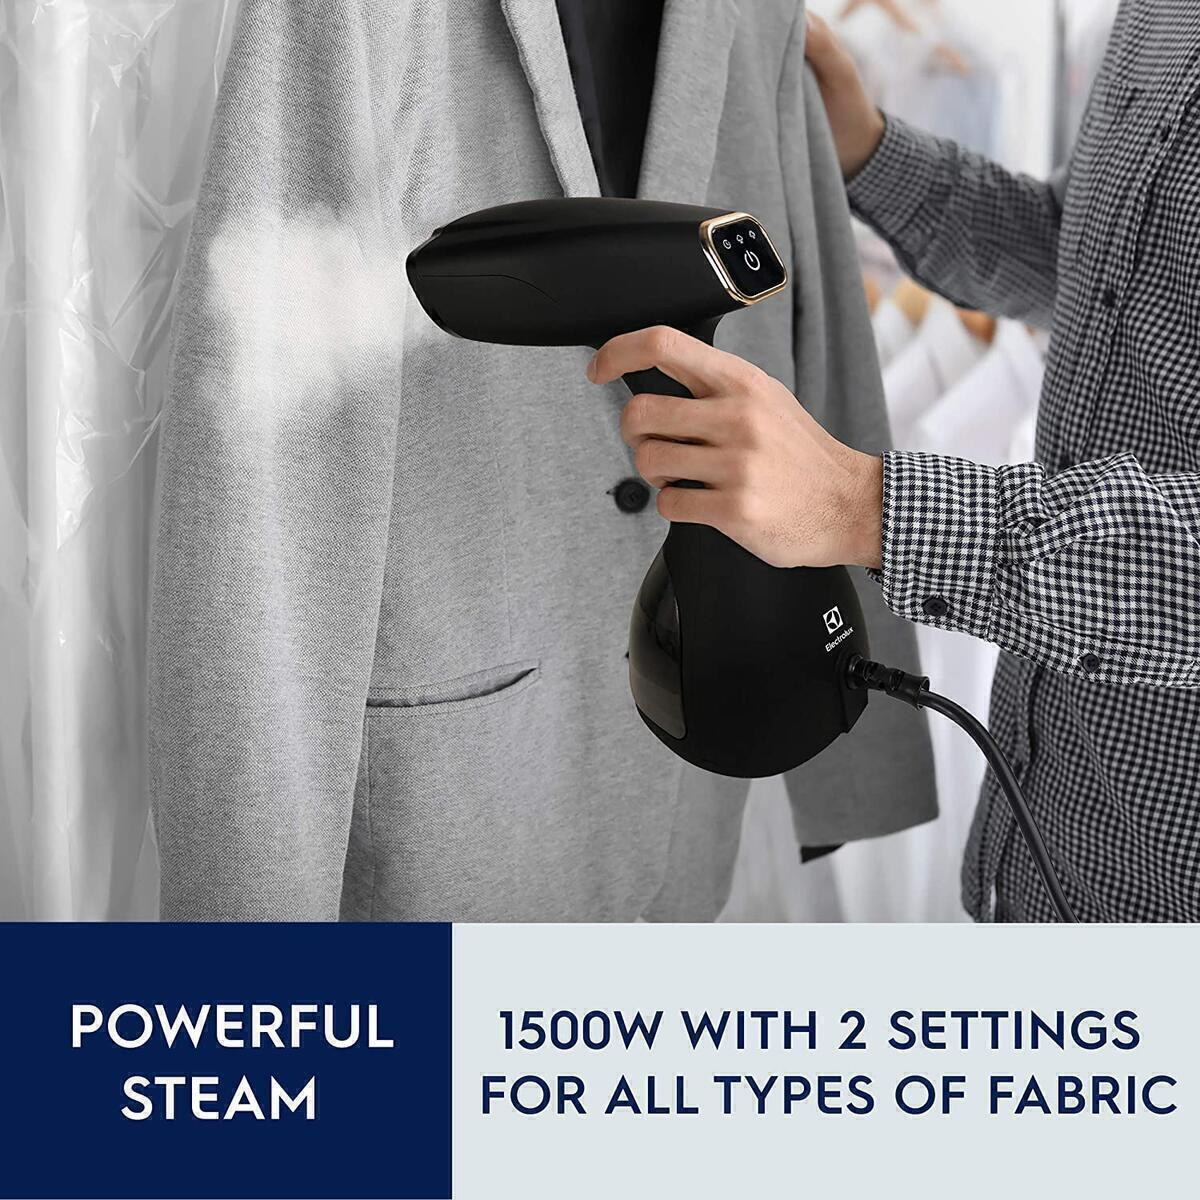 Electrolux Portable Handheld Garment and Fabric Steamer 1500 Watts, Rapid Heating Ceramic Sole Plate Steam Nozzle, 2 in 1 Fabric Wrinkle Remover and Clothing Iron, with Fabric Brush and Lint Brush